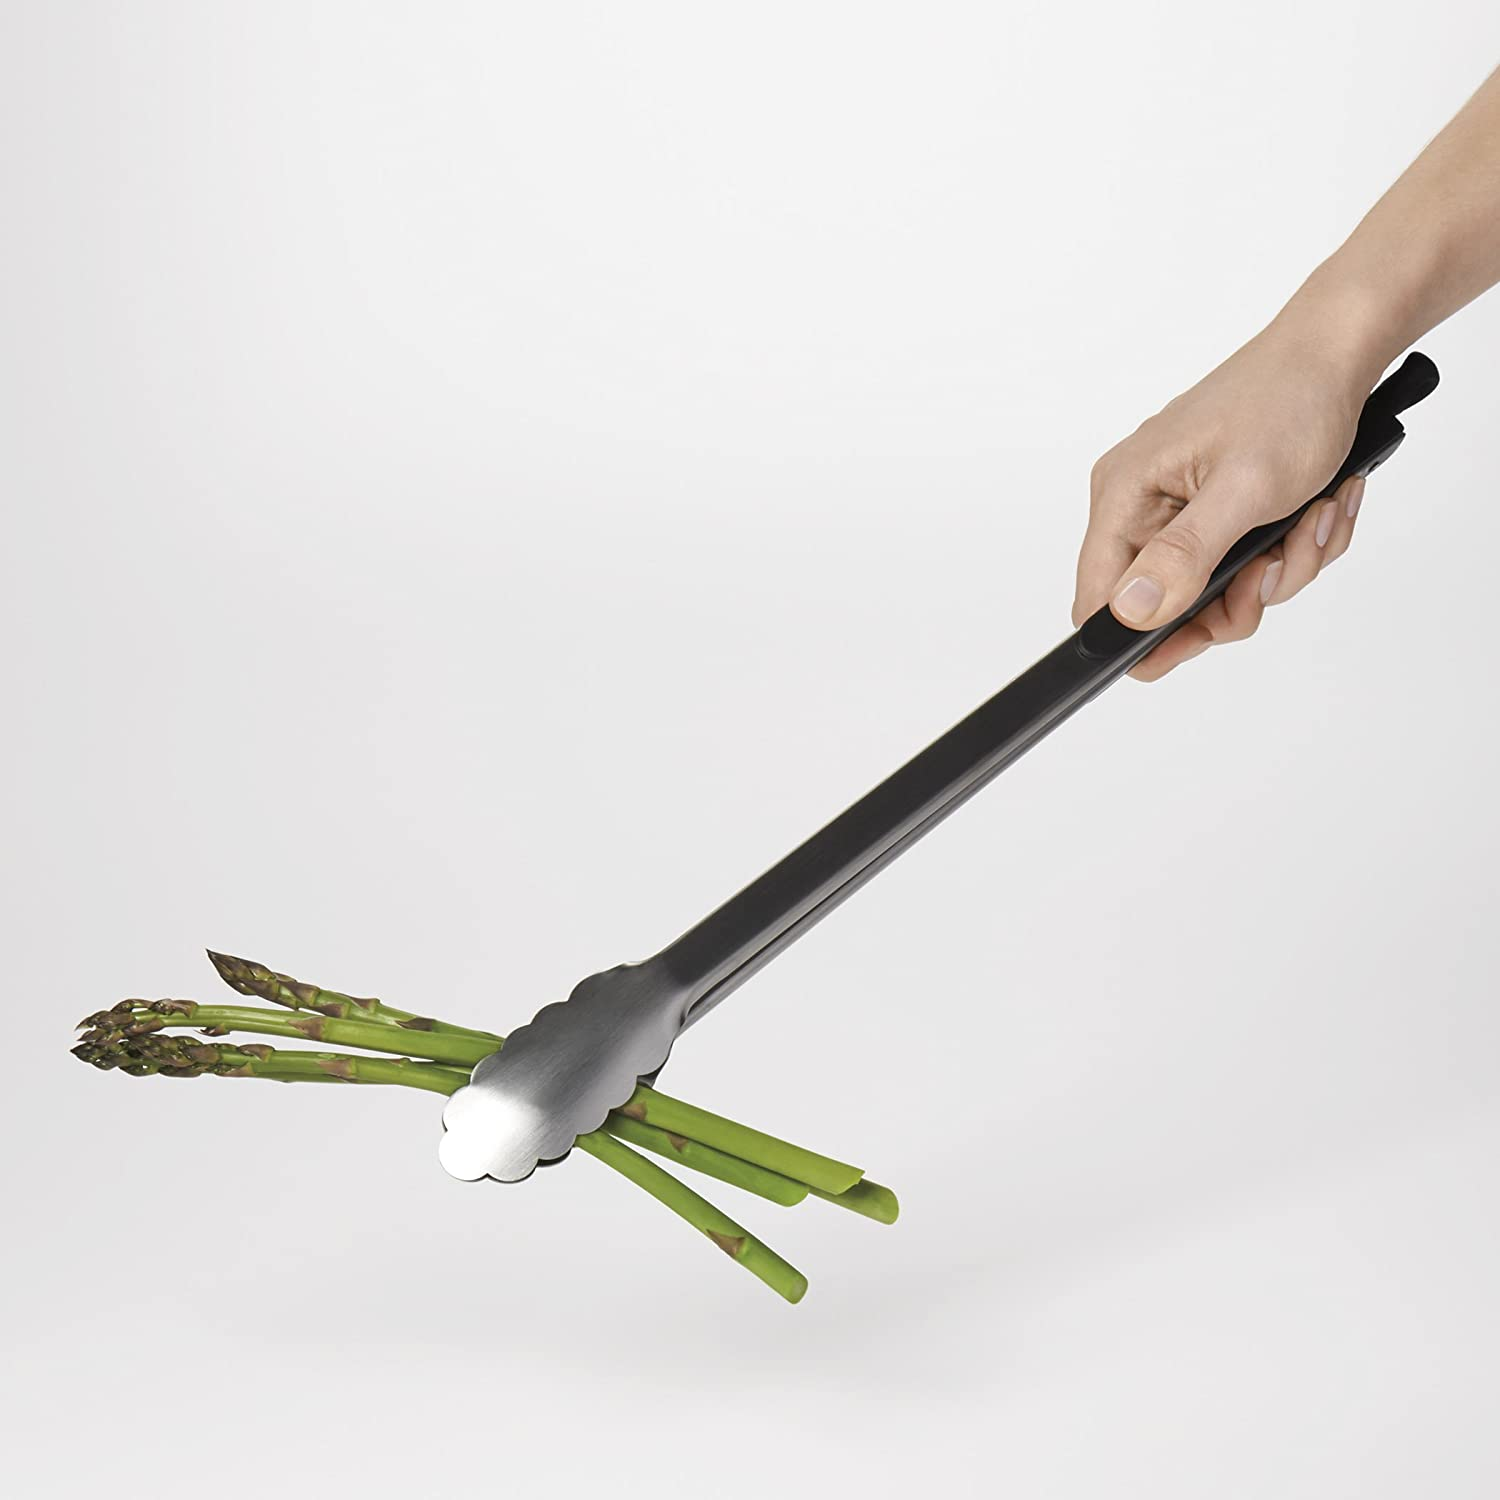 Best BBQ Tongs: OXO Good Grips stainless steel tongs